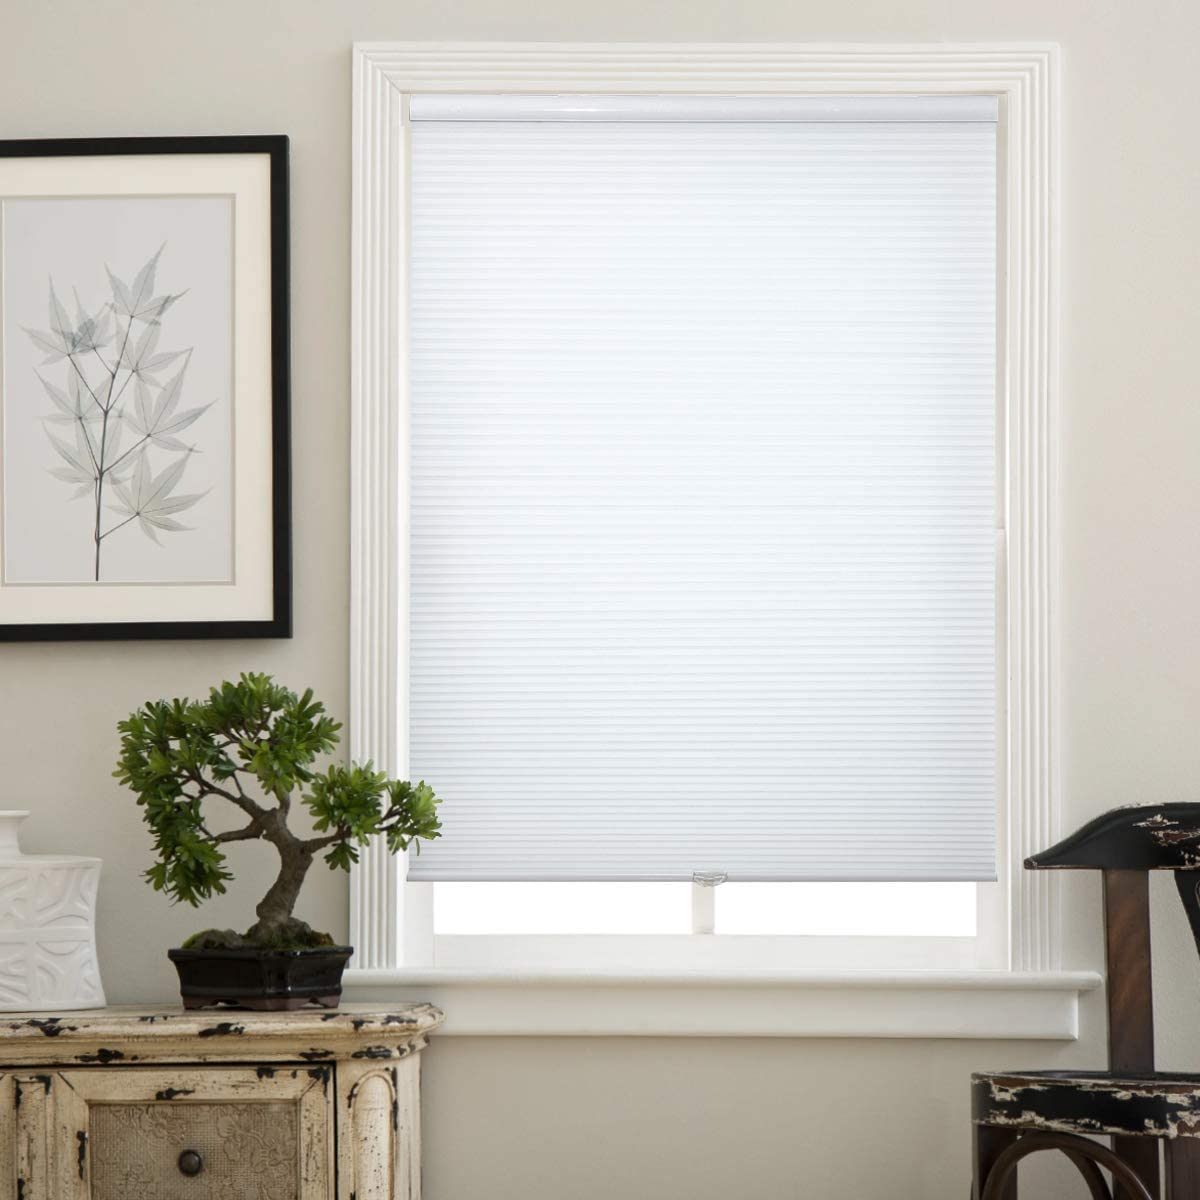 Matinss Cellular Shades Cordless Window Blinds Honeycomb Shades for Home and Windows Bedroom, Light Filtering, White, 24x36